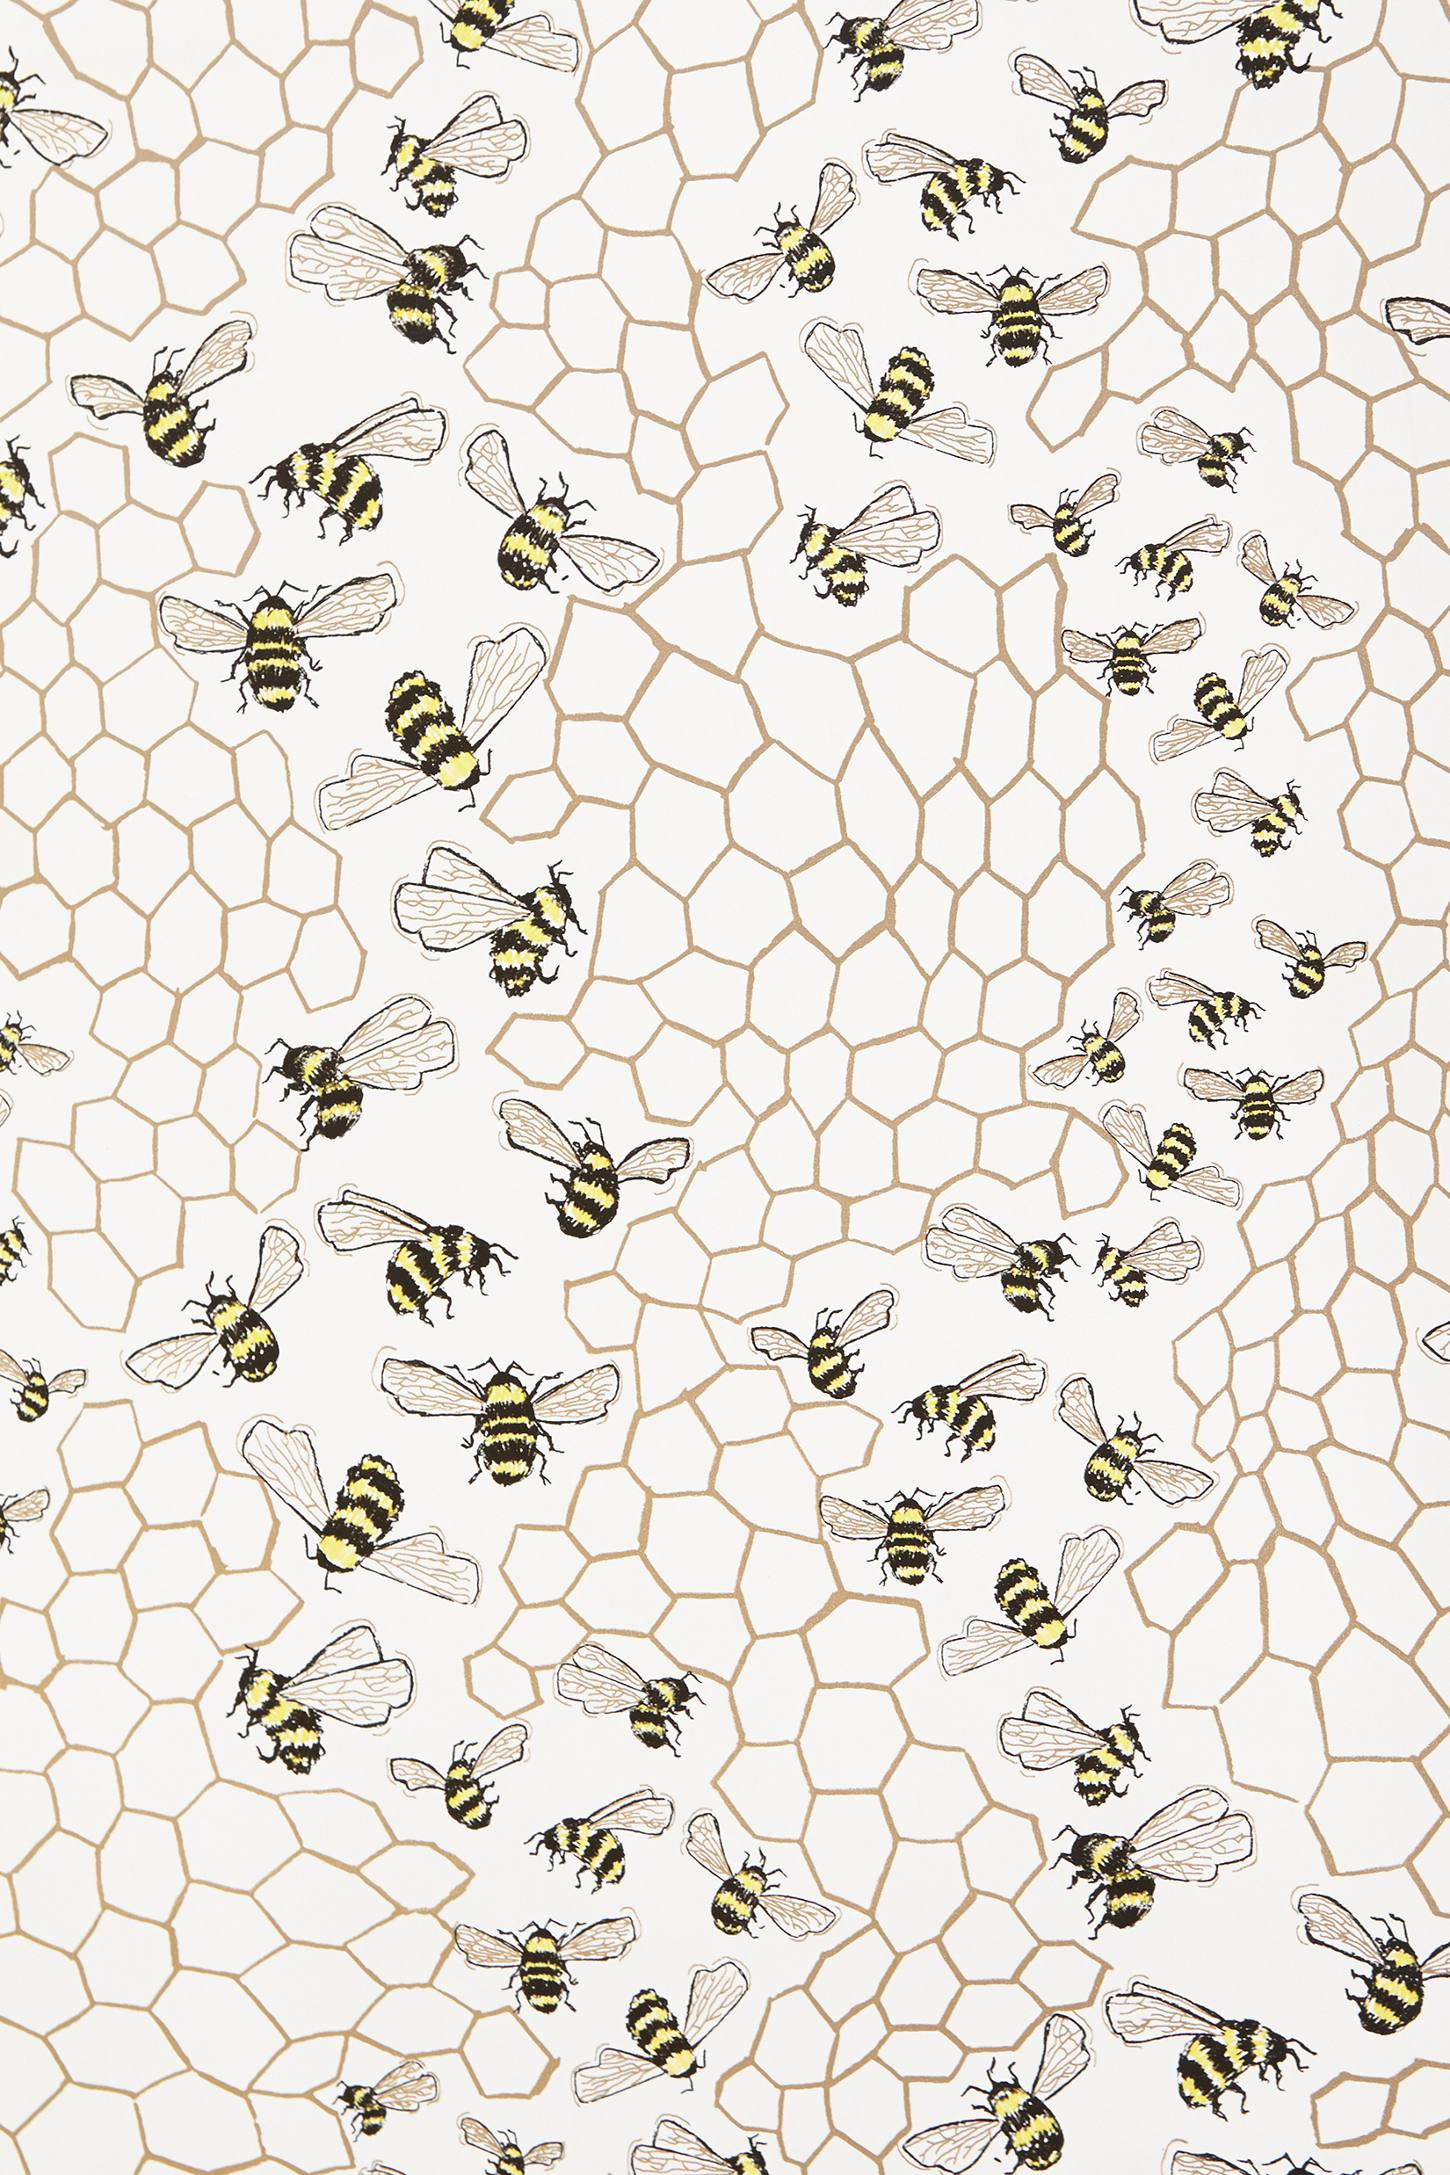 Bee-Colony-anthropologie-com-Apiary-Supplies-Beekeeping-Supplies-Honey-Supplie-wallpaper-wp5403647